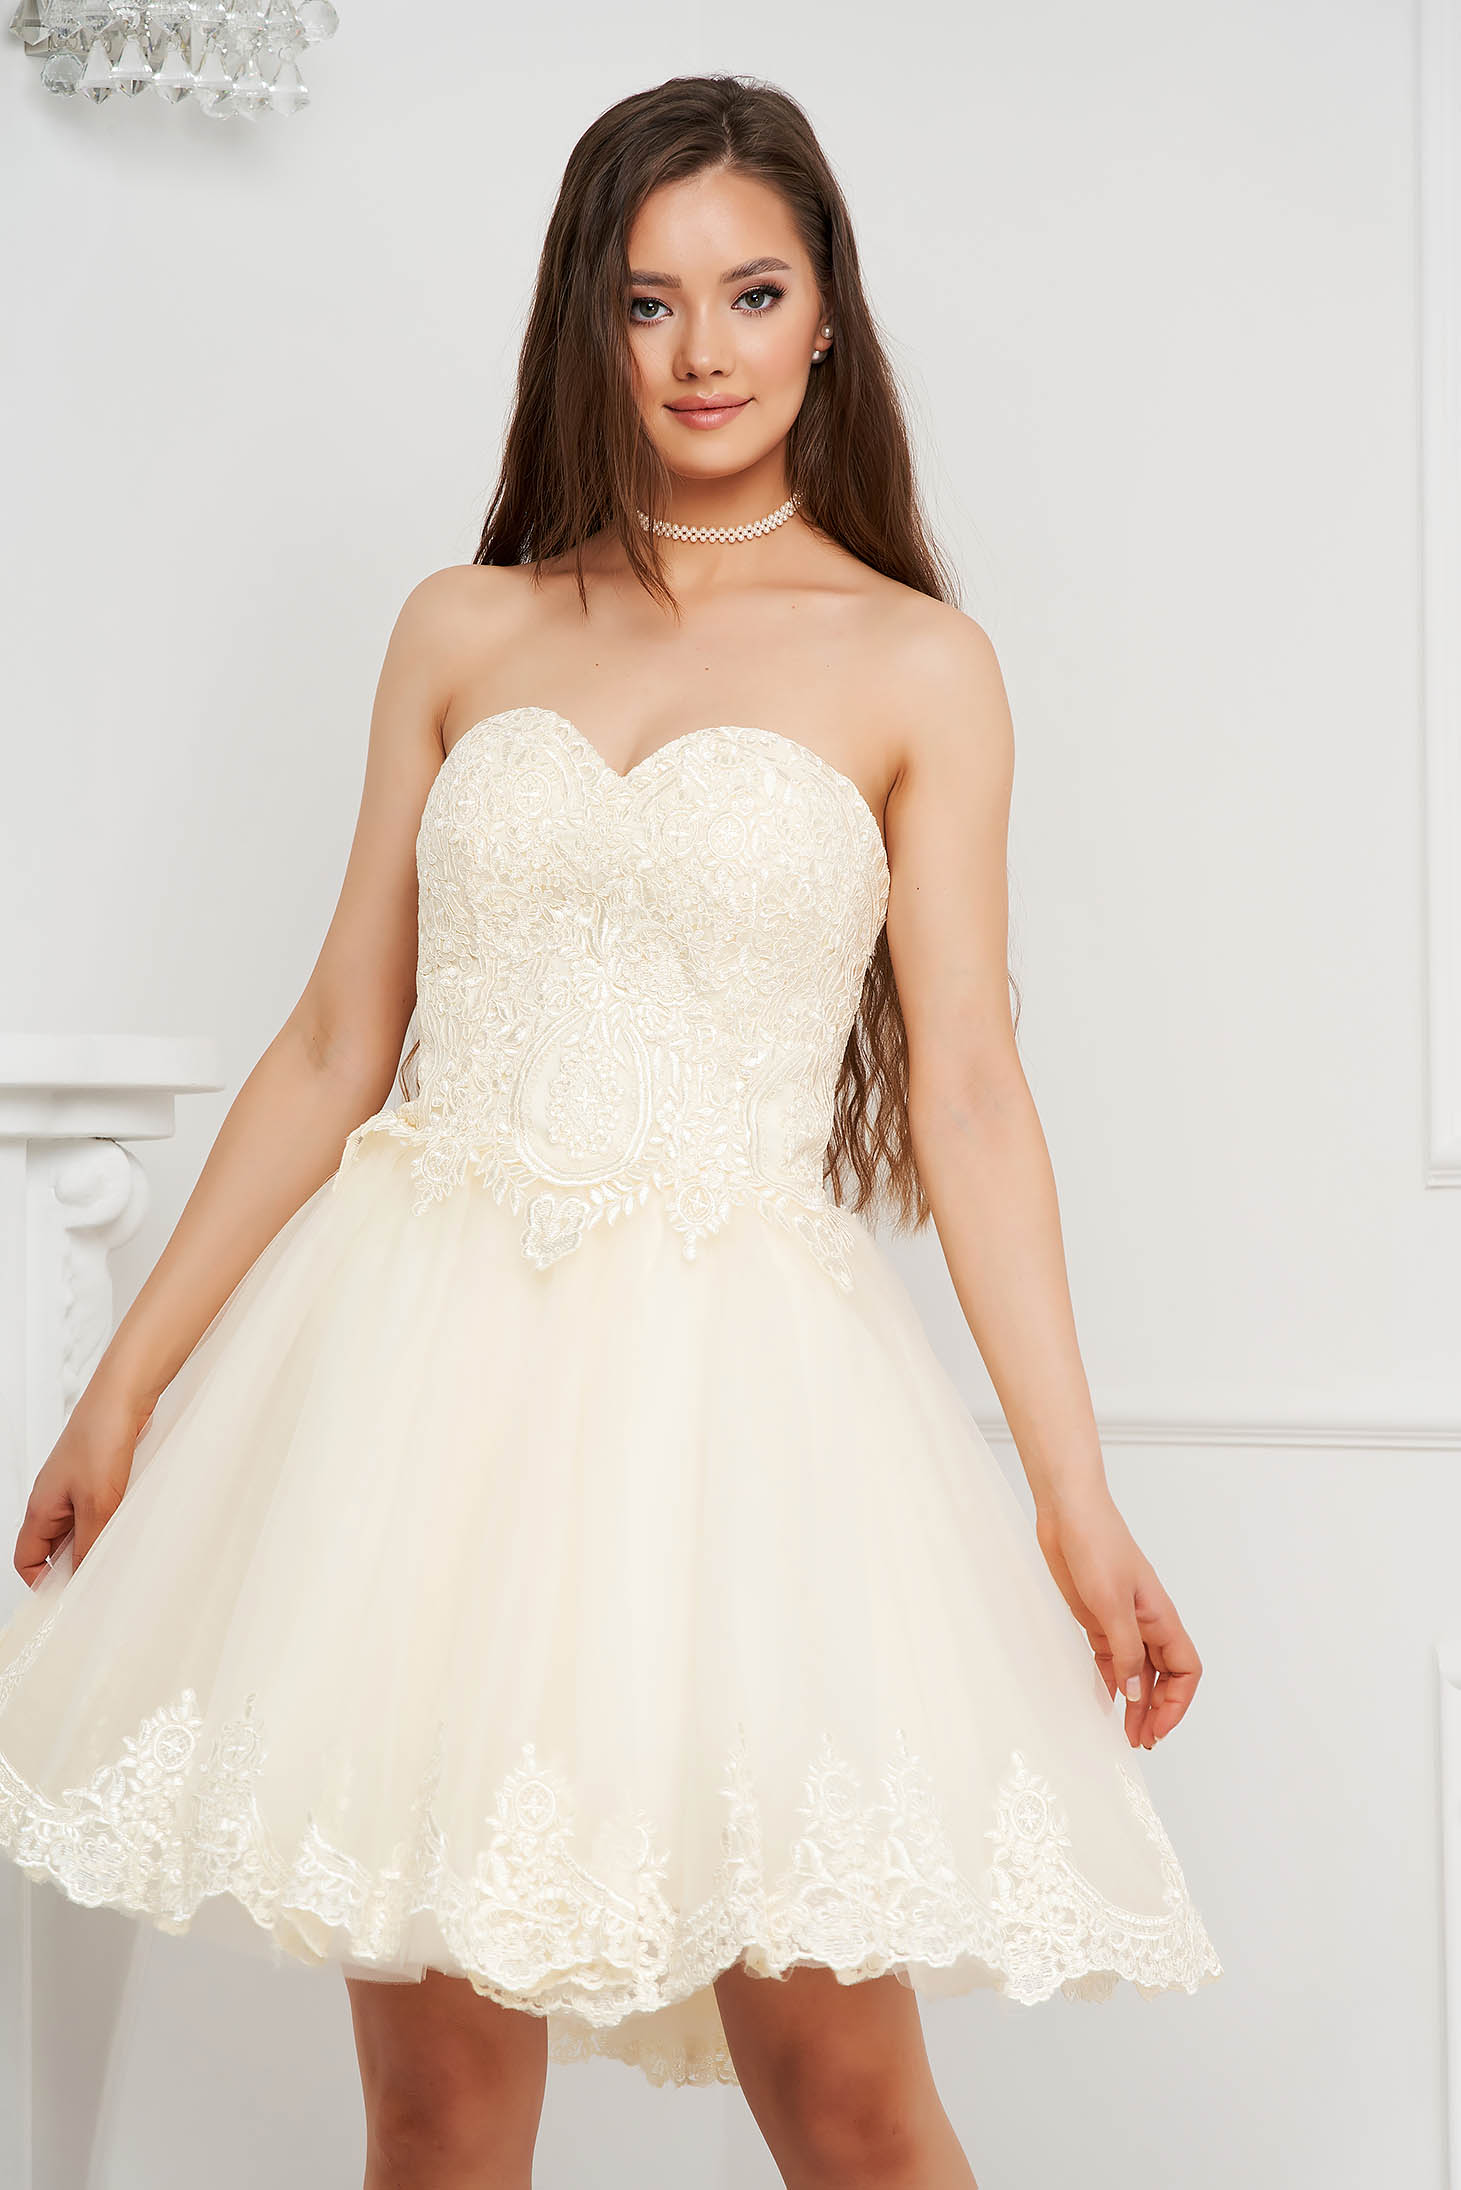 Ivory dress short cut occasional cloche from veil fabric with push-up cups with embroidery details